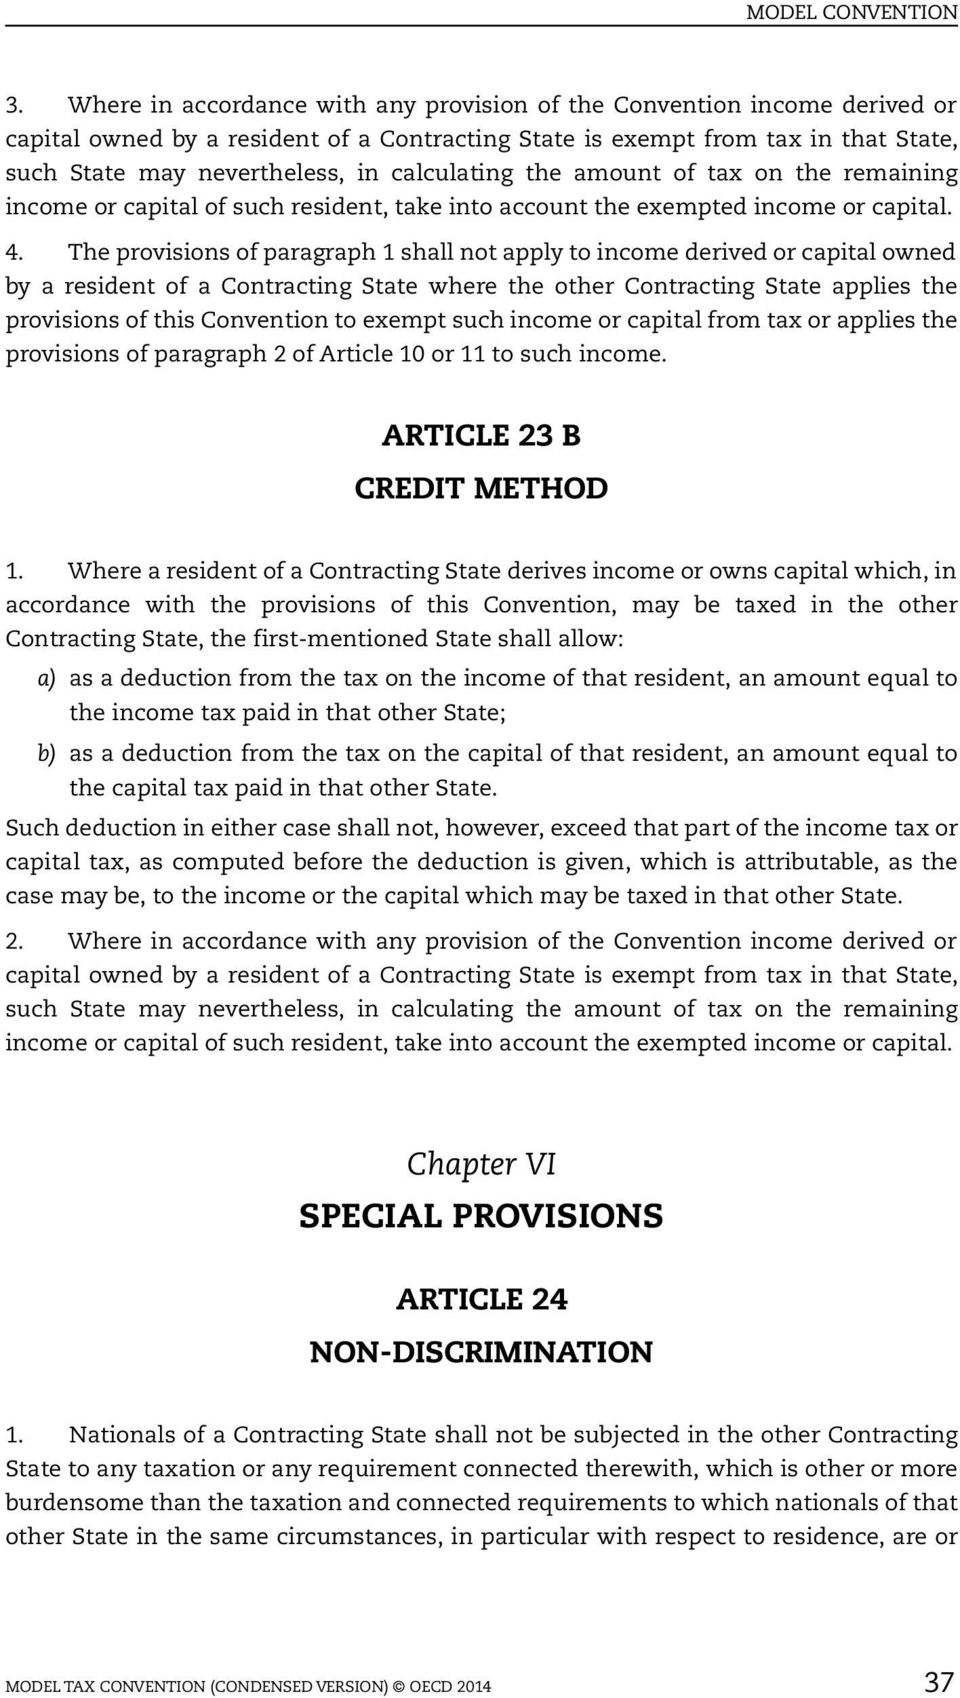 The provisions of paragraph 1 shall not apply to income derived or capital owned by a resident of a Contracting State where the other Contracting State applies the provisions of this Convention to